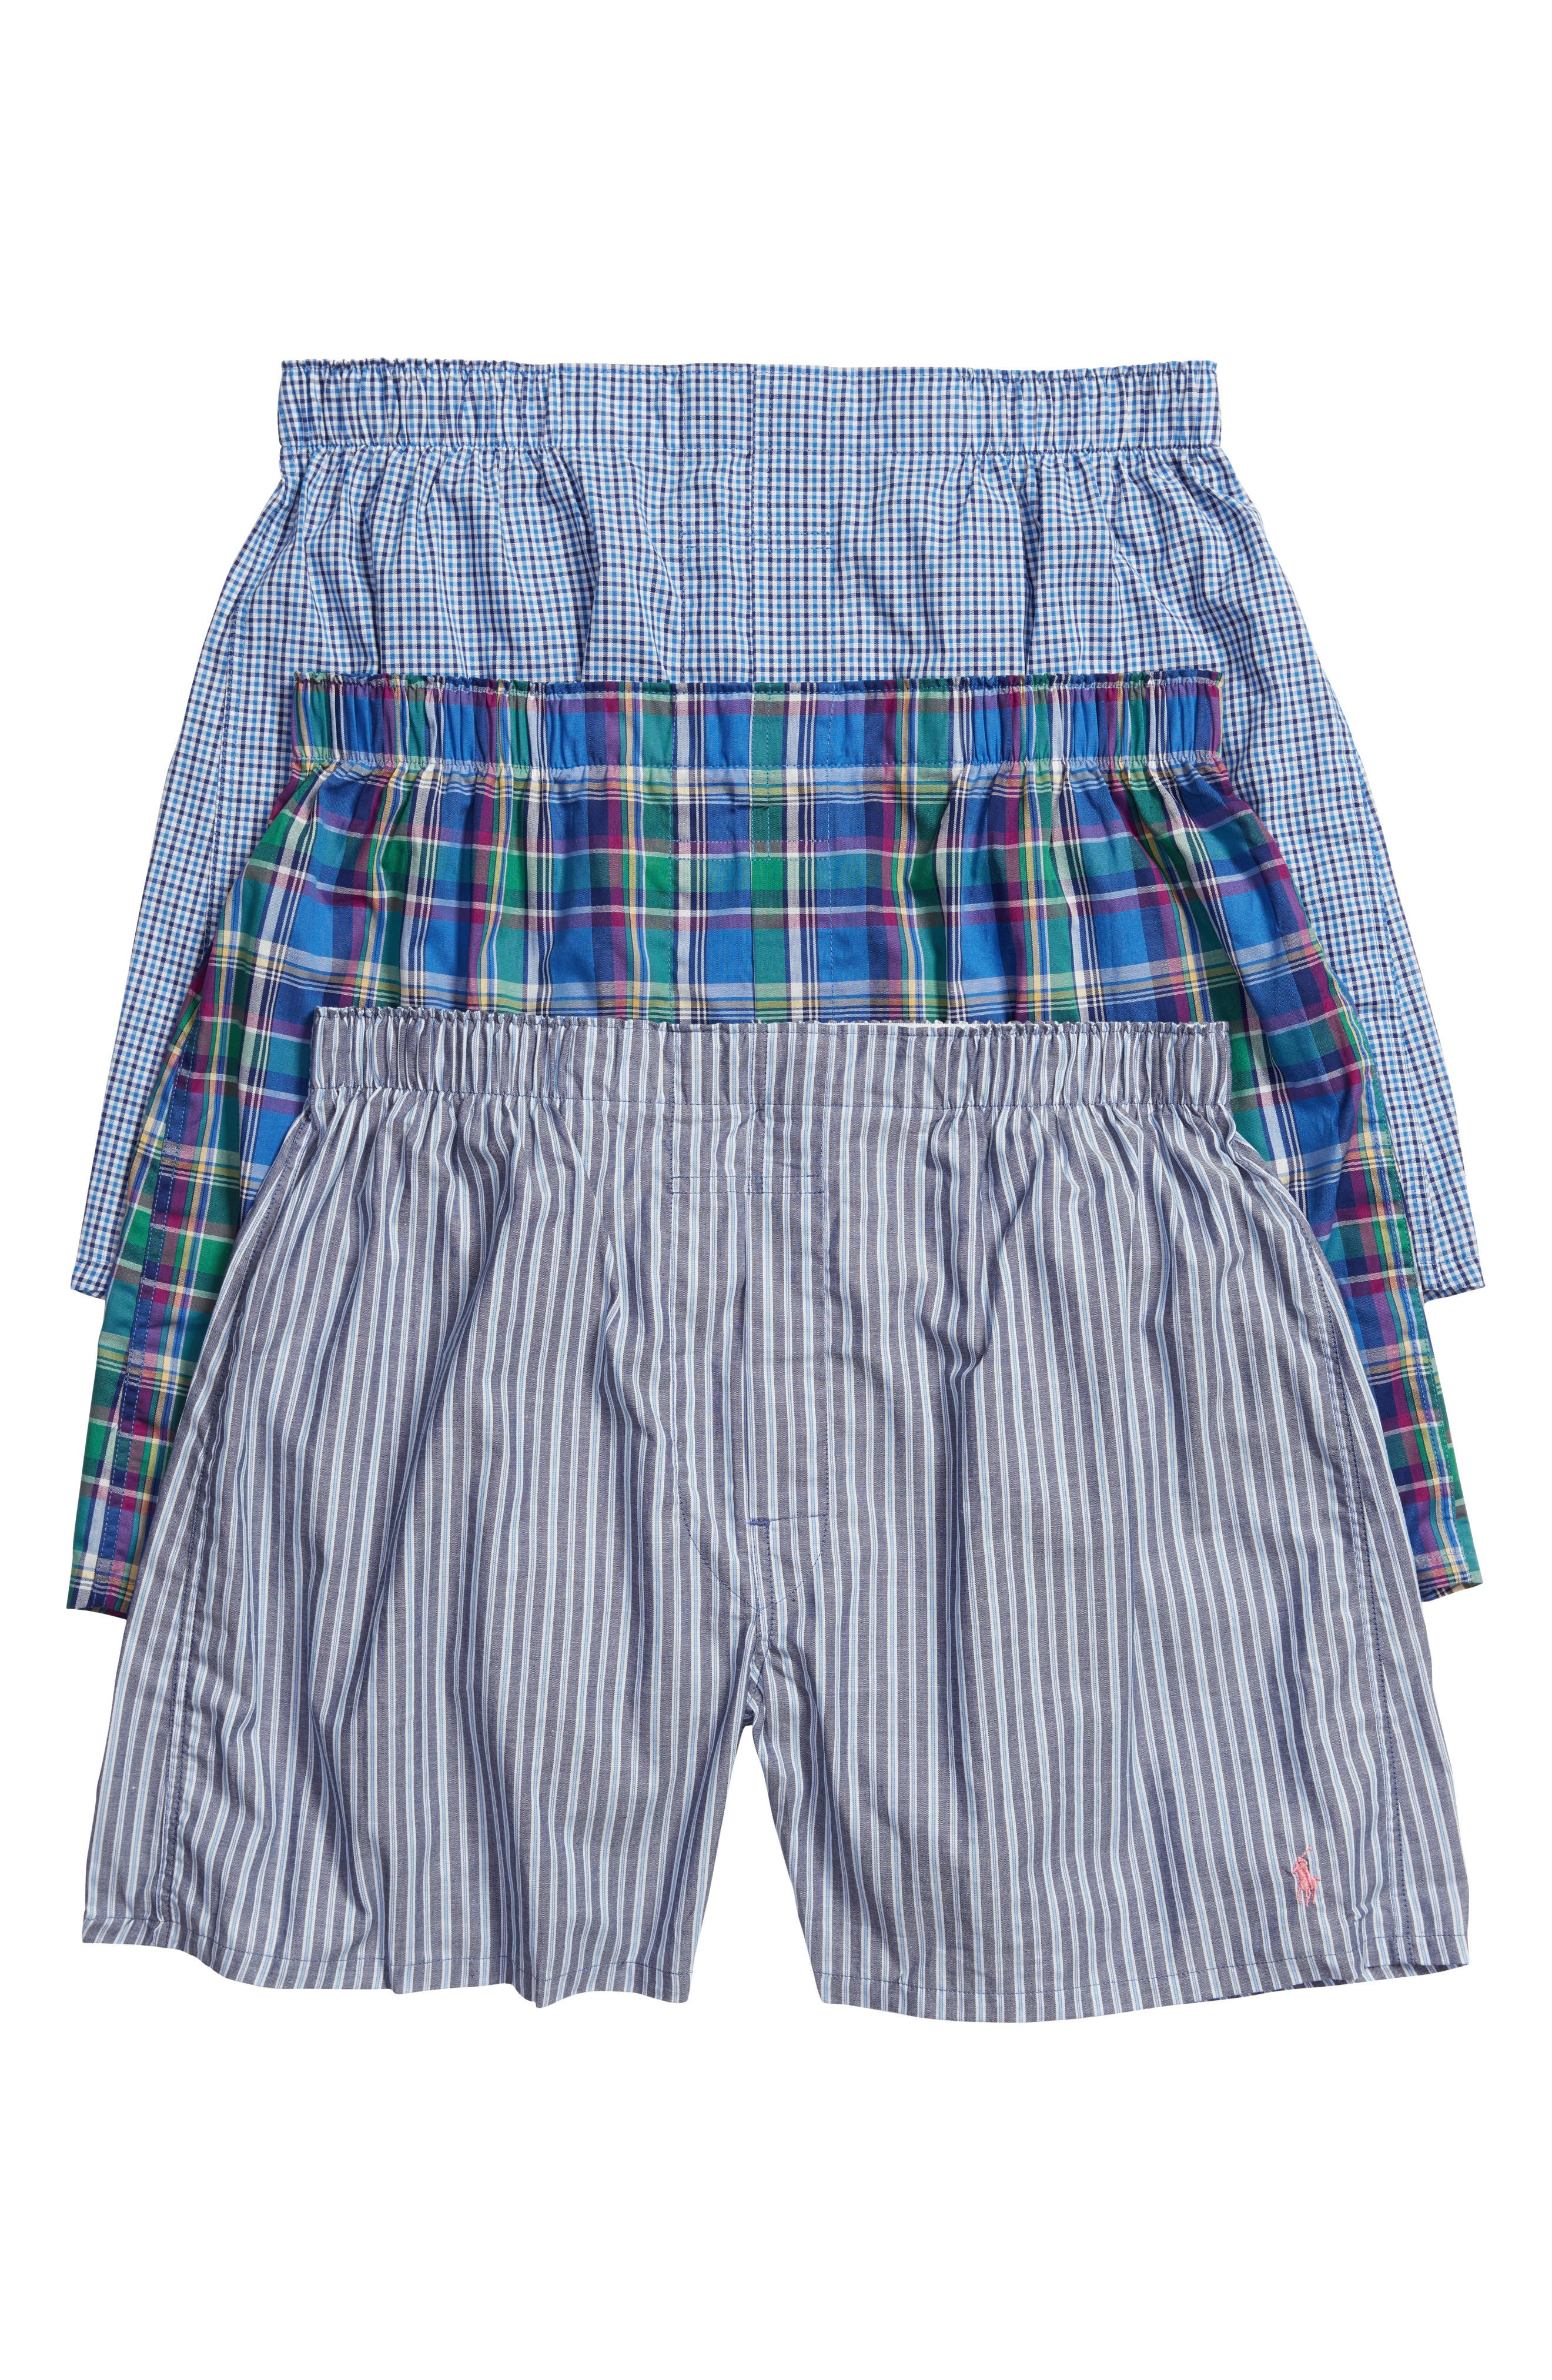 Assorted 3-Pack Woven Cotton Boxers,                             Main thumbnail 2, color,